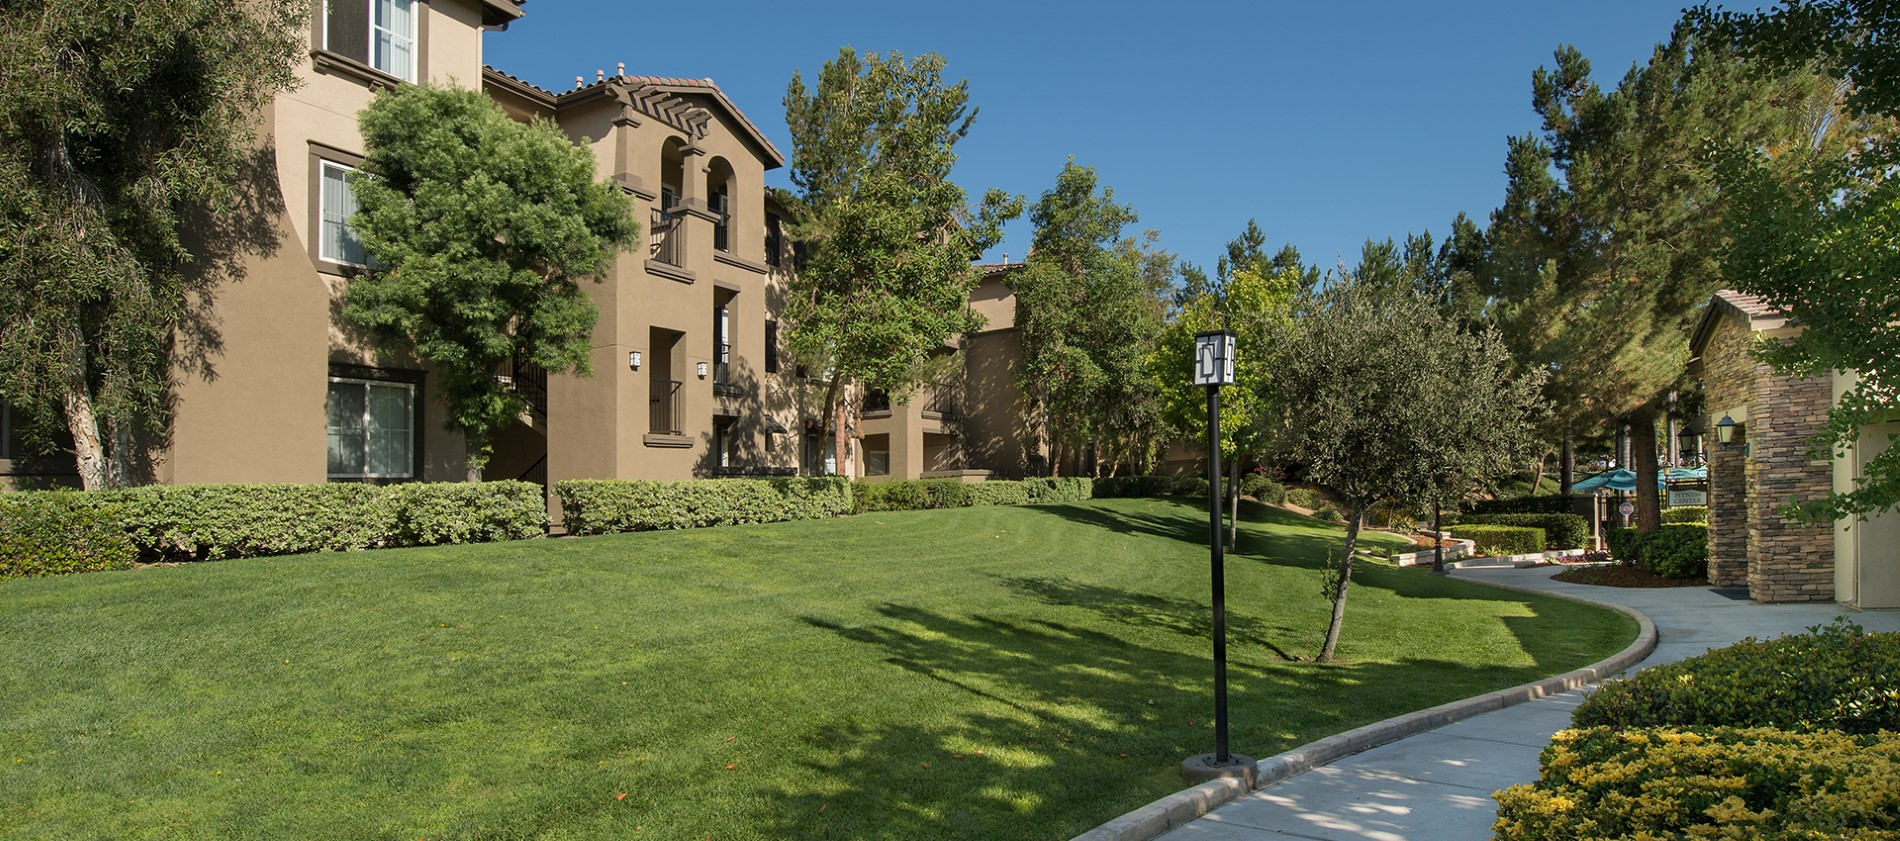 Learn about our neighborhood at Esplanade Apartment Homes in Riverside, CA on our website